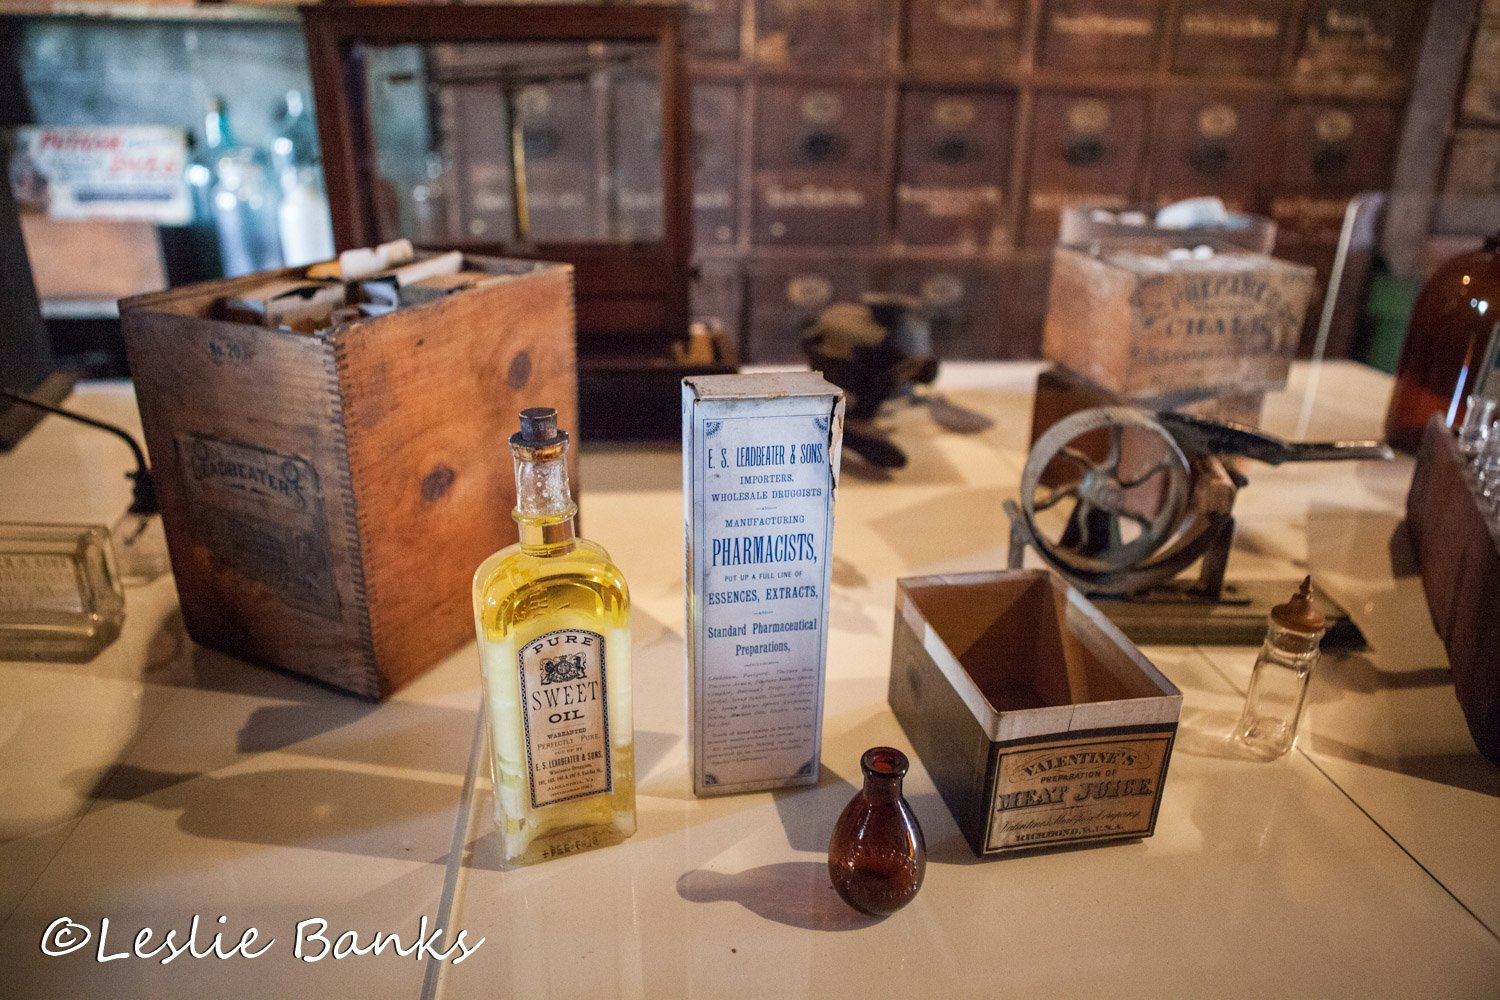 Stabler-Leadbeater Apothecary Brands